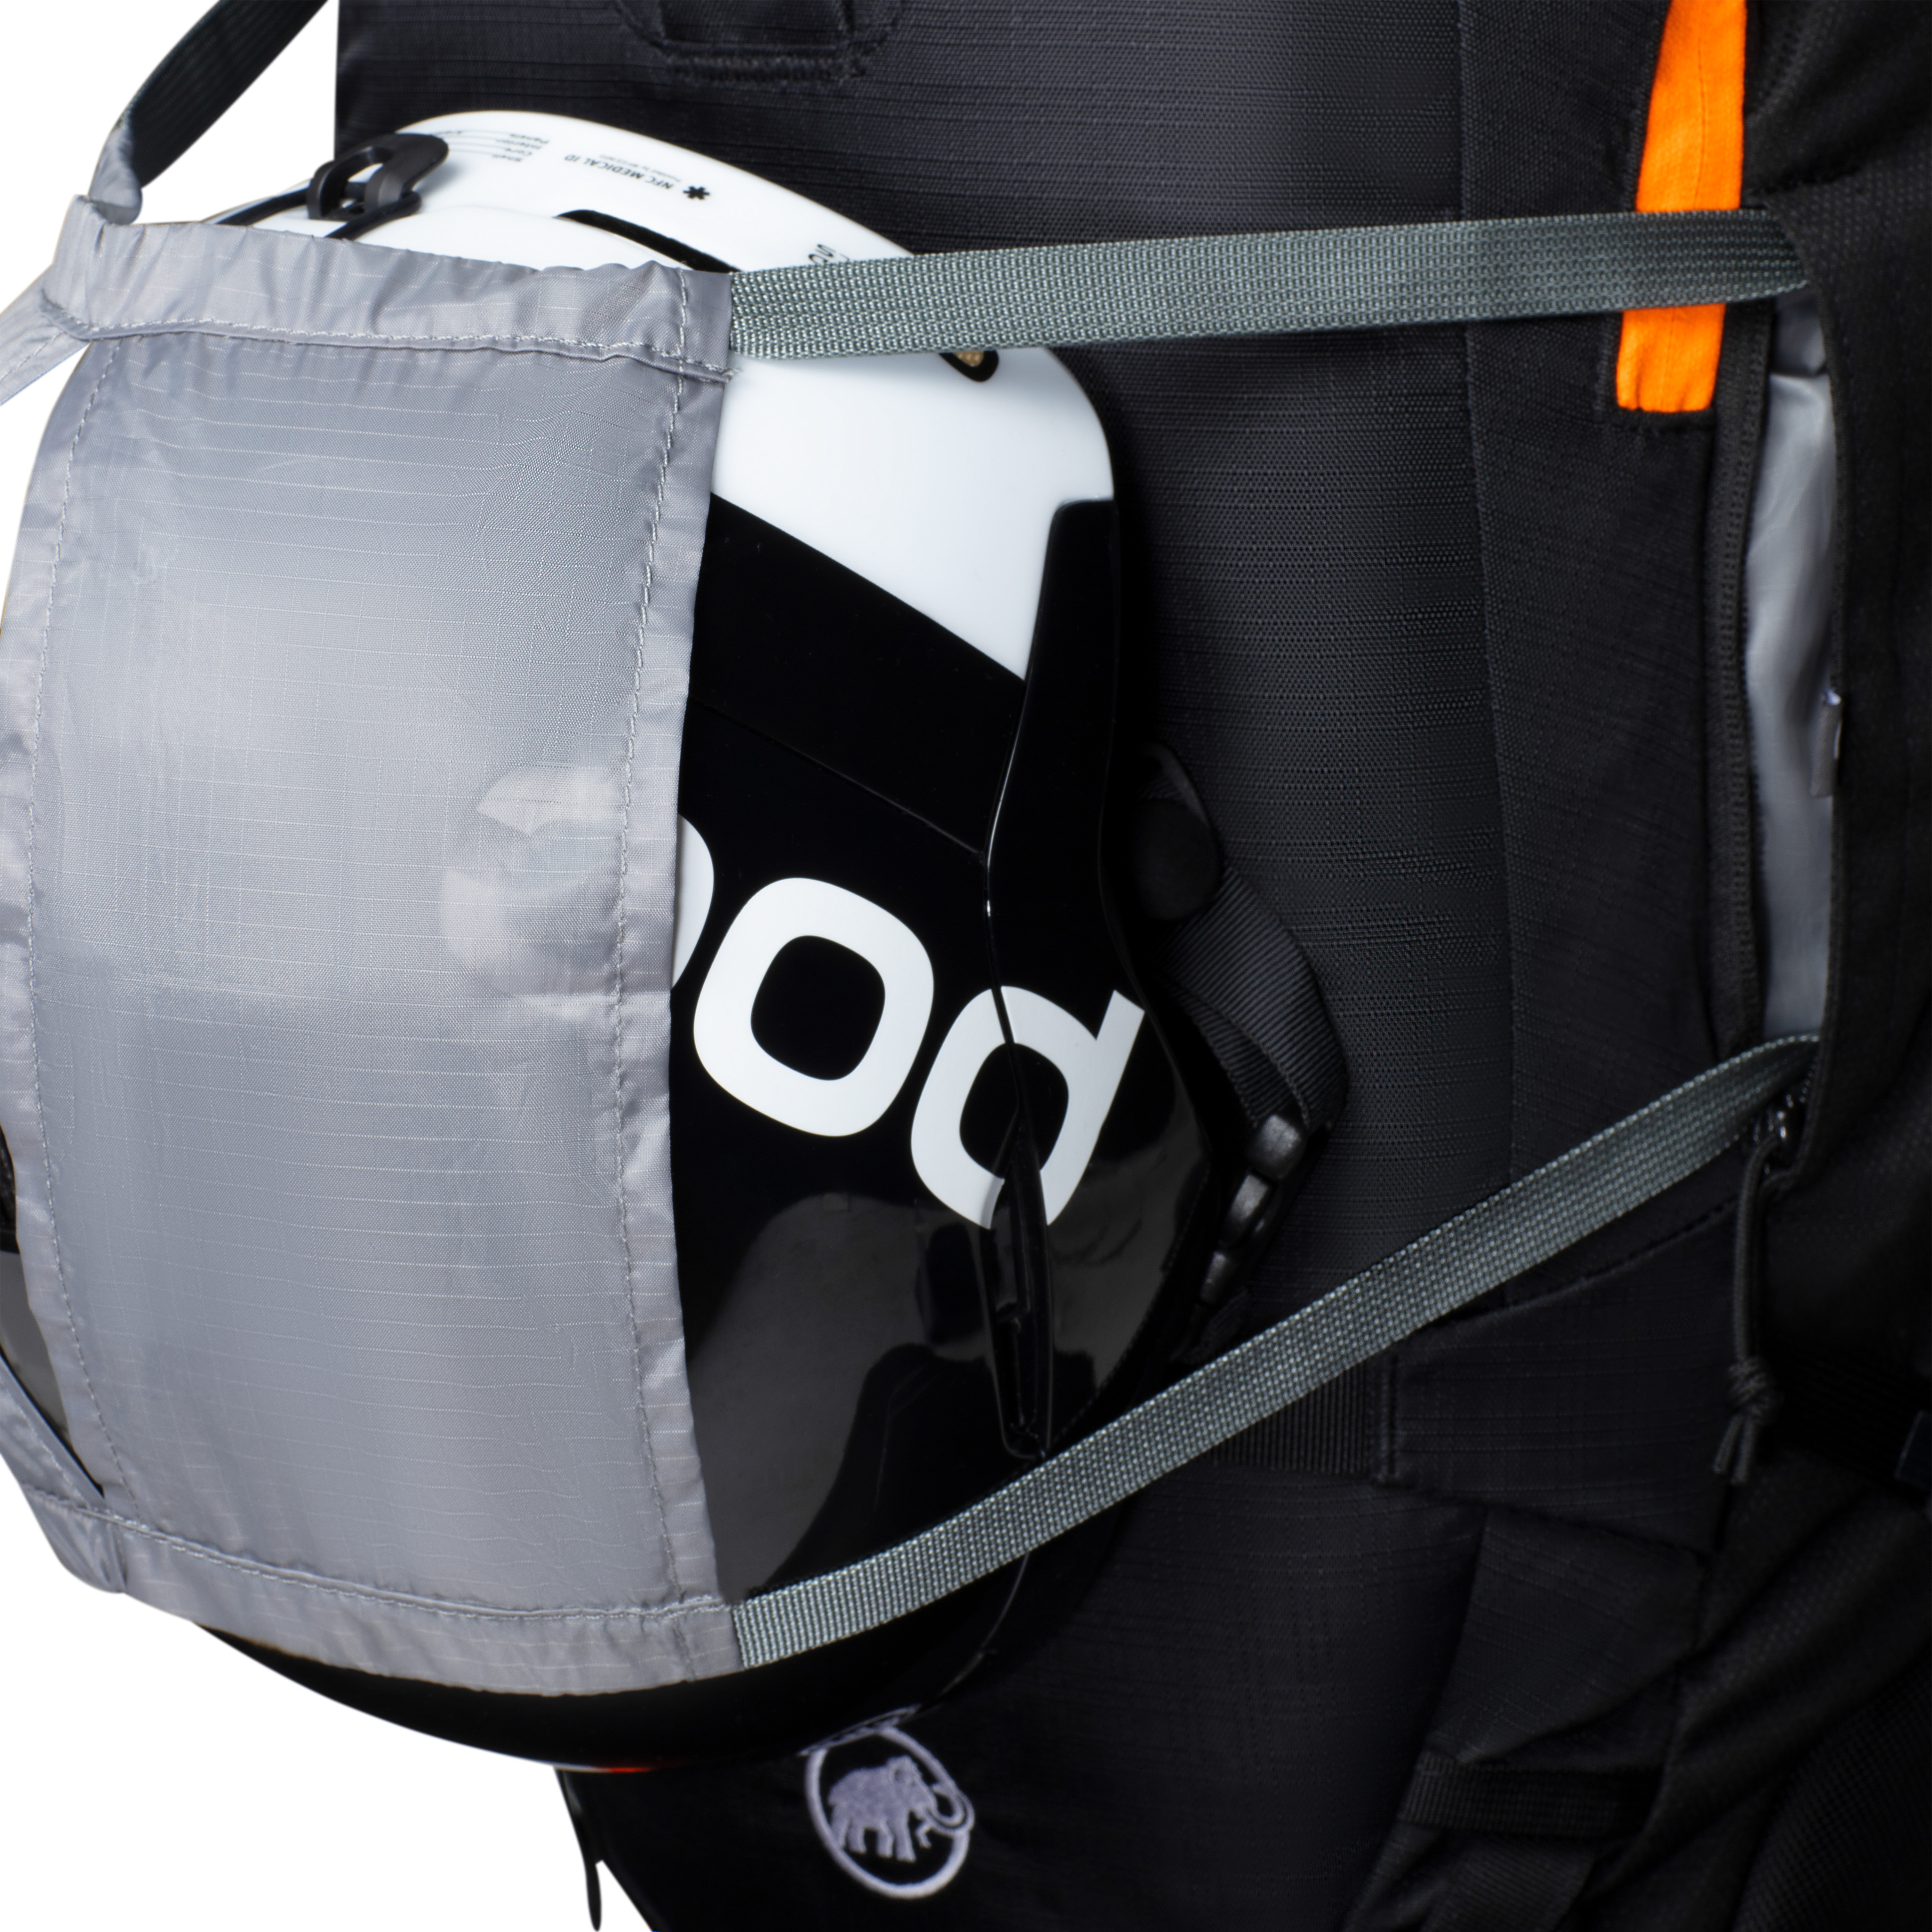 Ride Removable Airbag 3.0 thumbnail